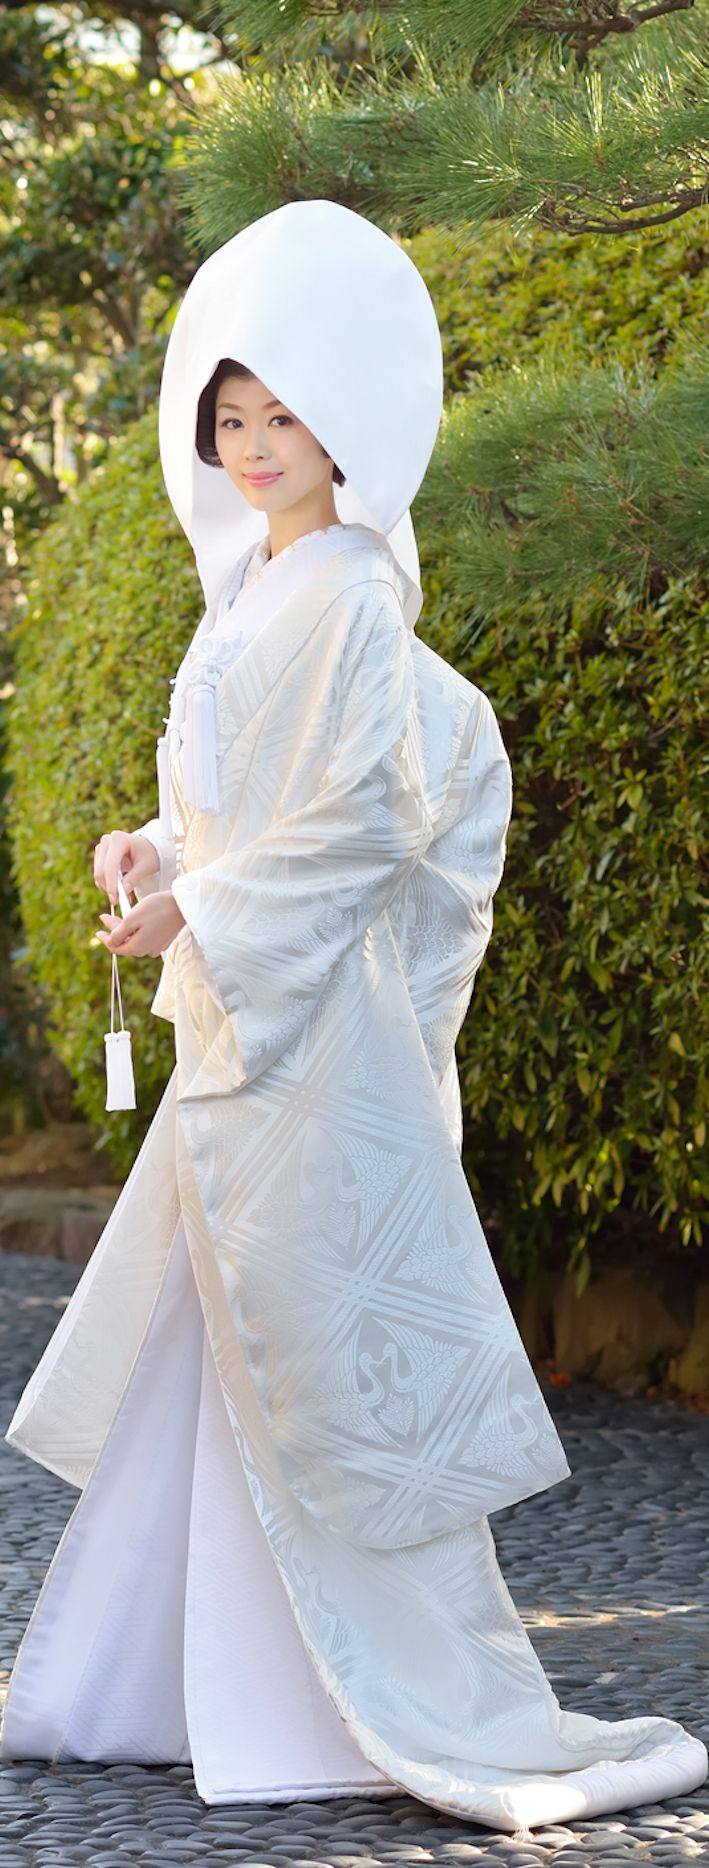 japanese traditional wedding kimono SHIROMUKU